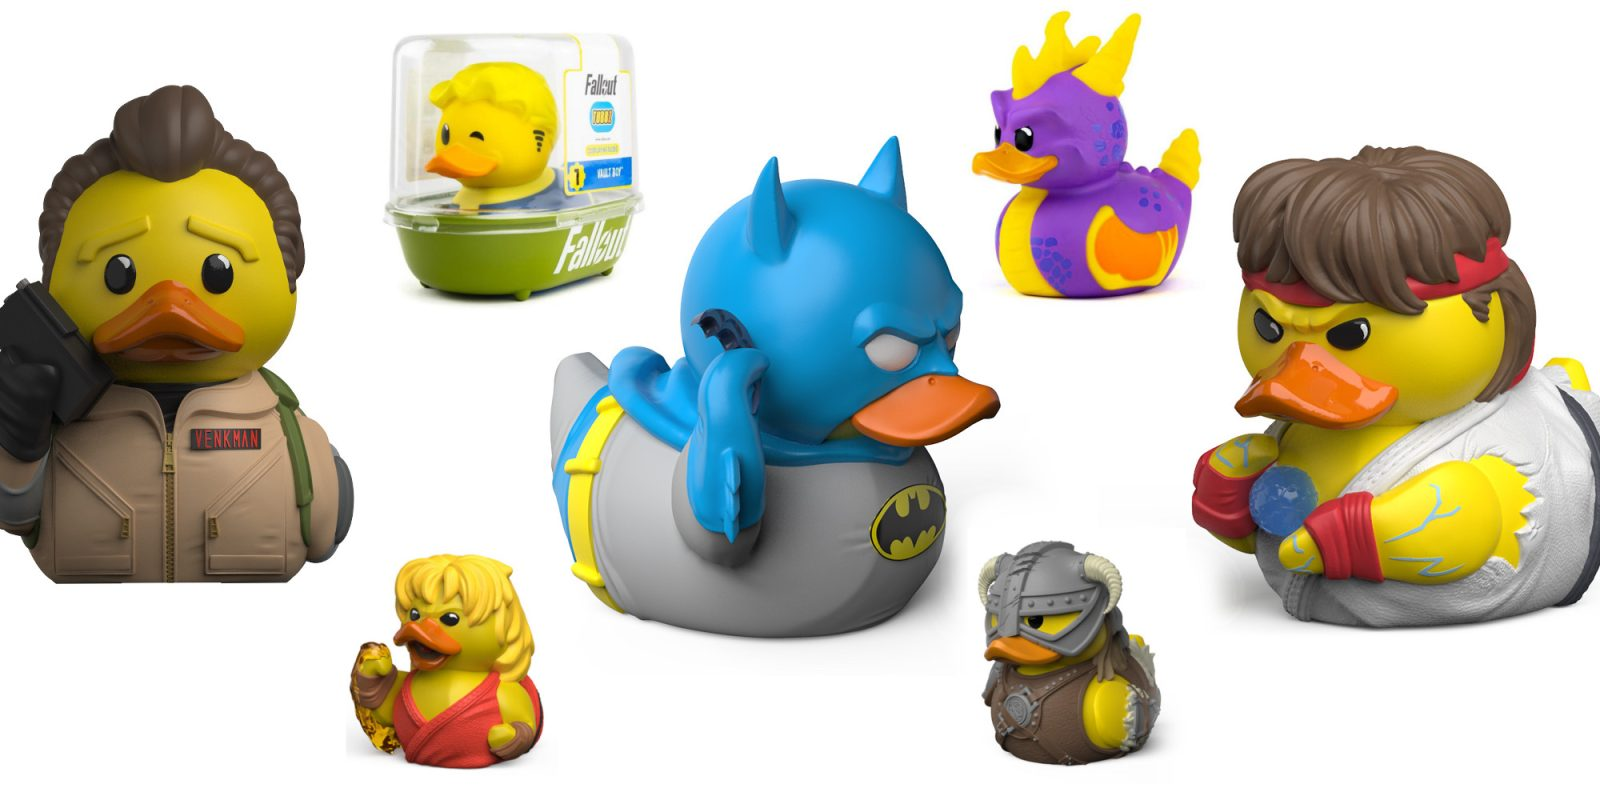 New TUBBZ collectibles transform your favorite characters into rubber ducks